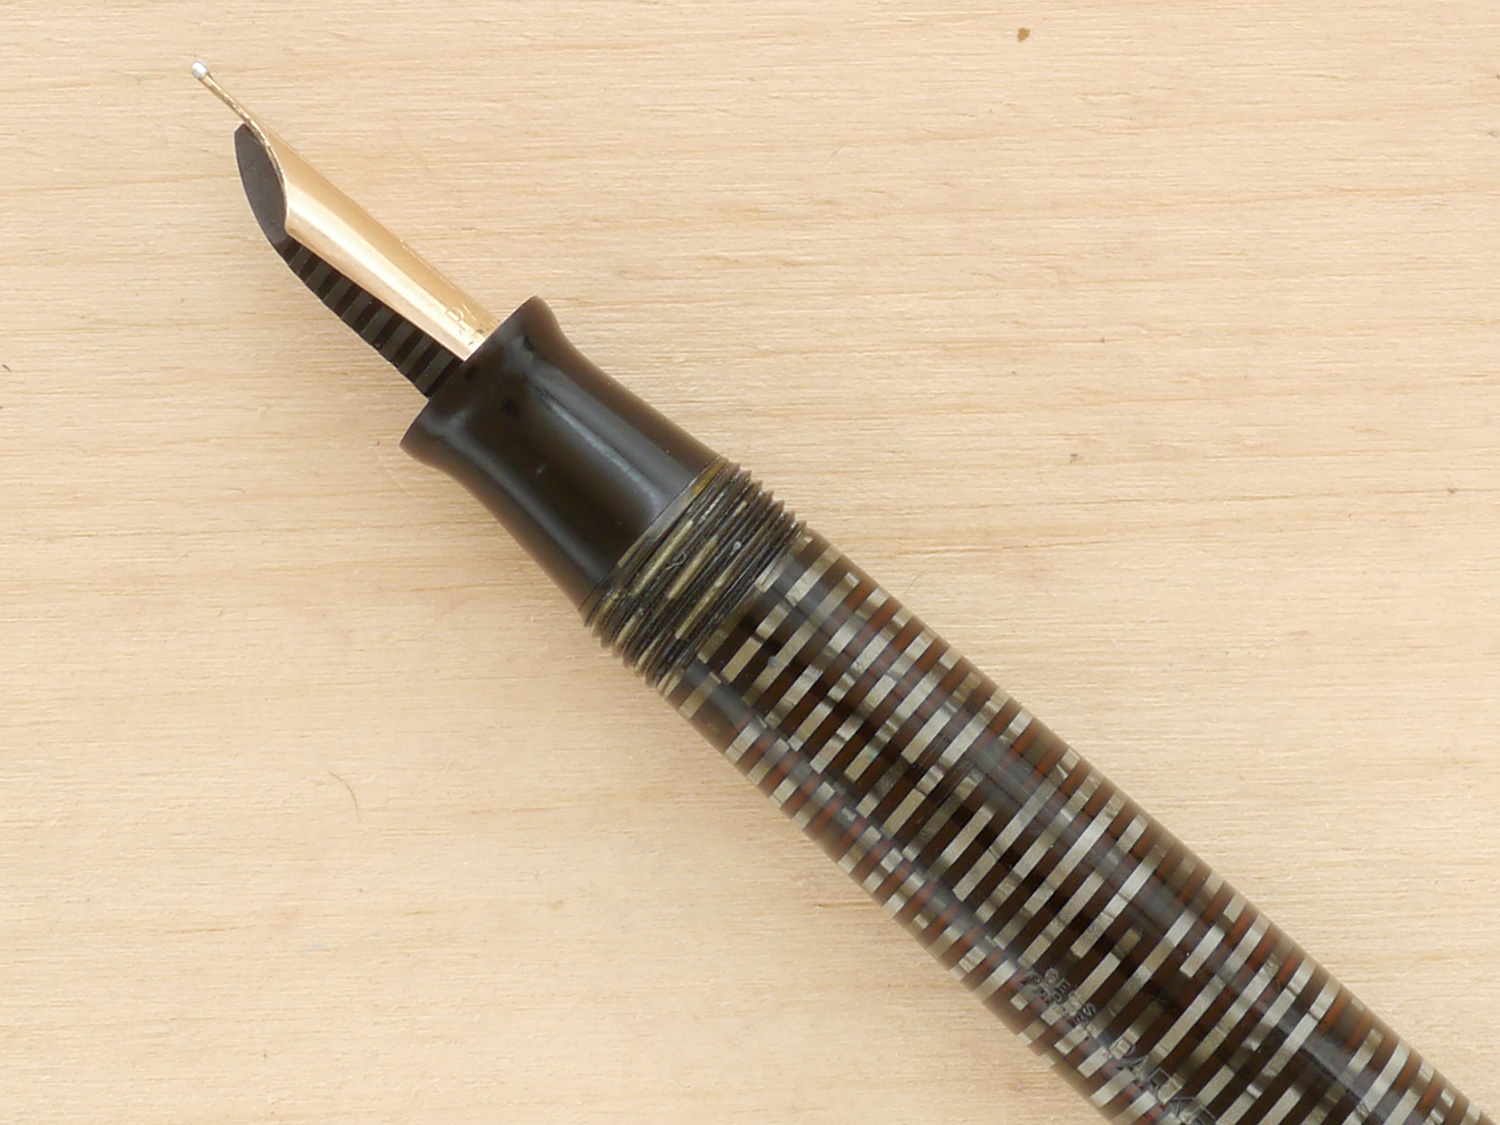 Parker Vacumatic Major, Silver Pearl, F, nib profile showing excellent tipping geometry and alignment.